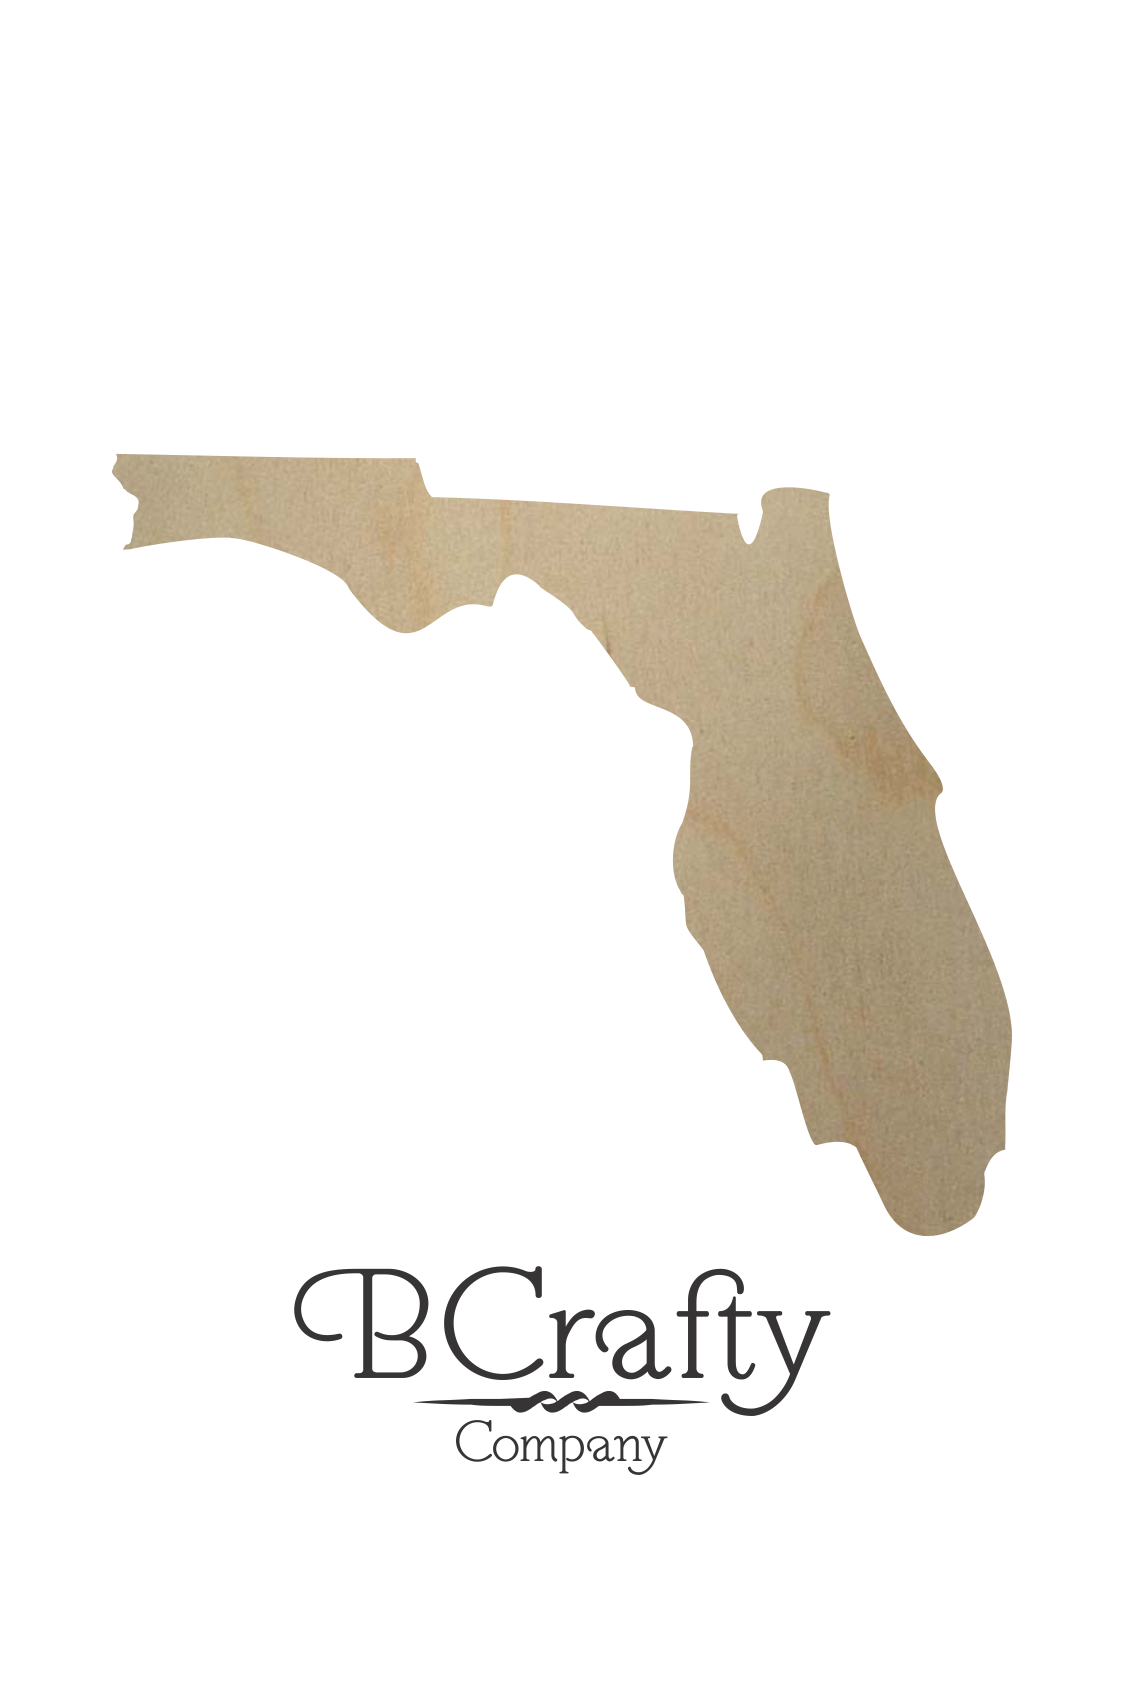 Florida shape png. Wooden state cutout